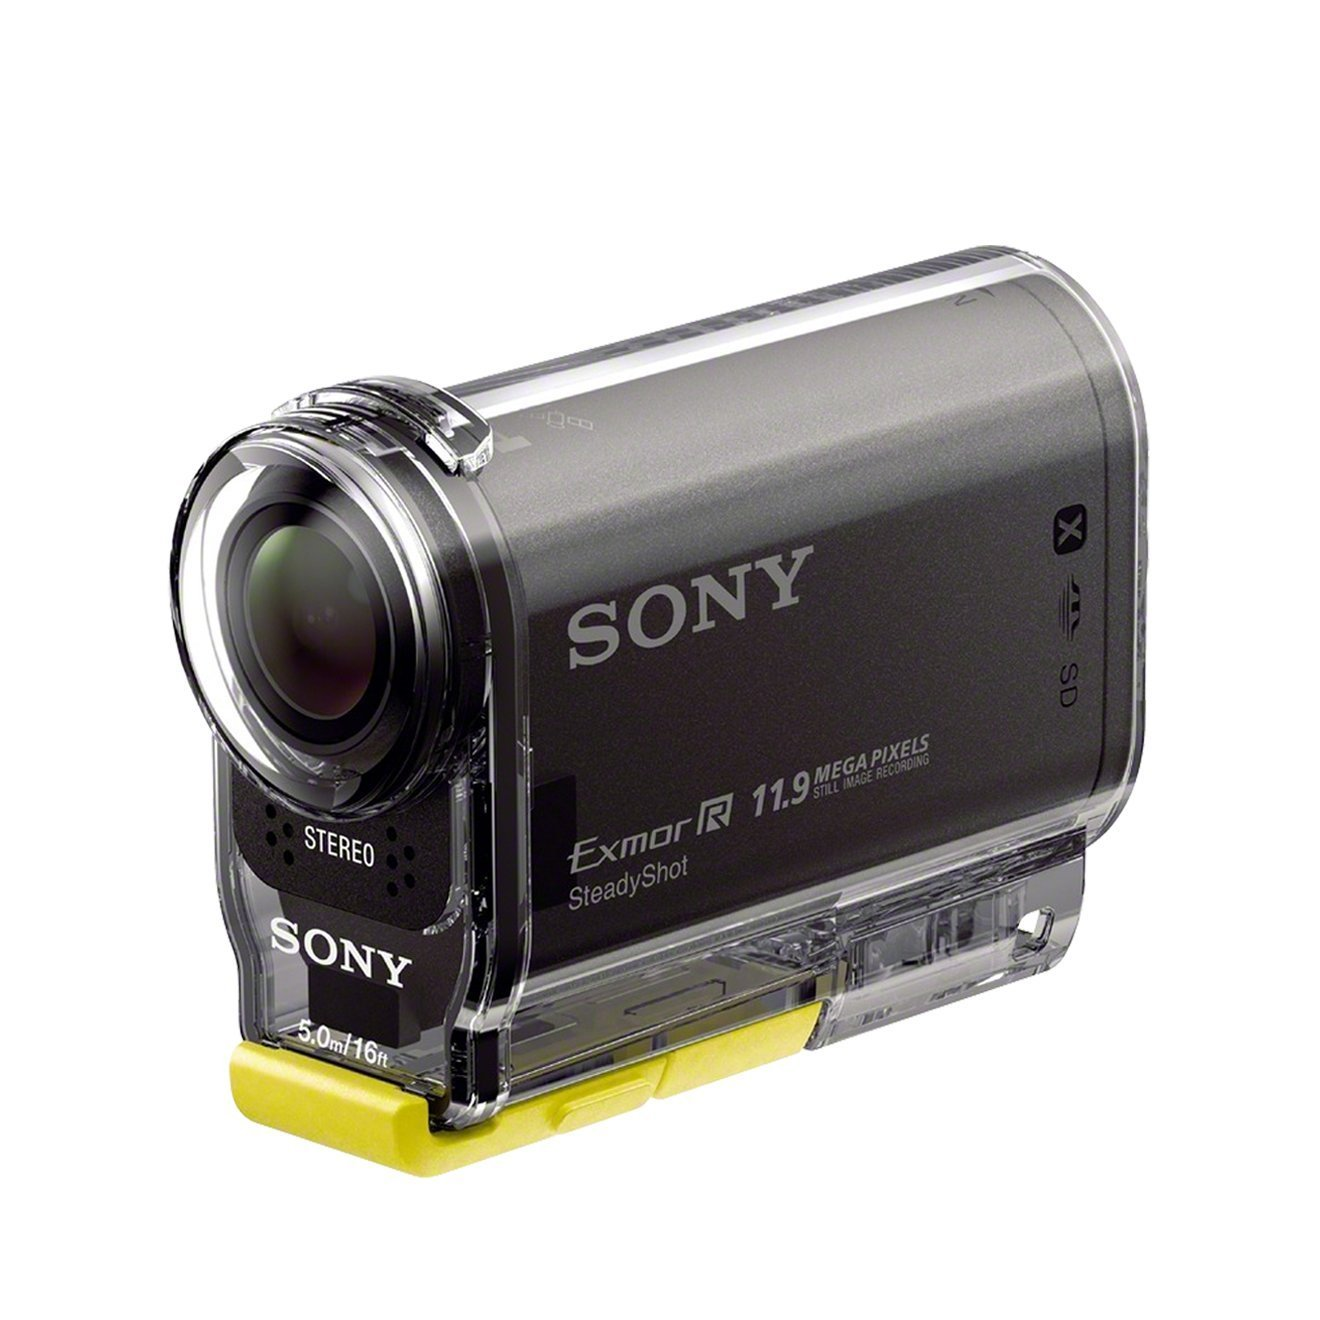 Sony HDR-AS30 Winter Edition - Videocámara deportiva de 16.8 Mp (Full HD, GPS, WiFi, NFC, estabilizador digital), negro - kit con montura de muñeca y diadema de montaje en la cabeza